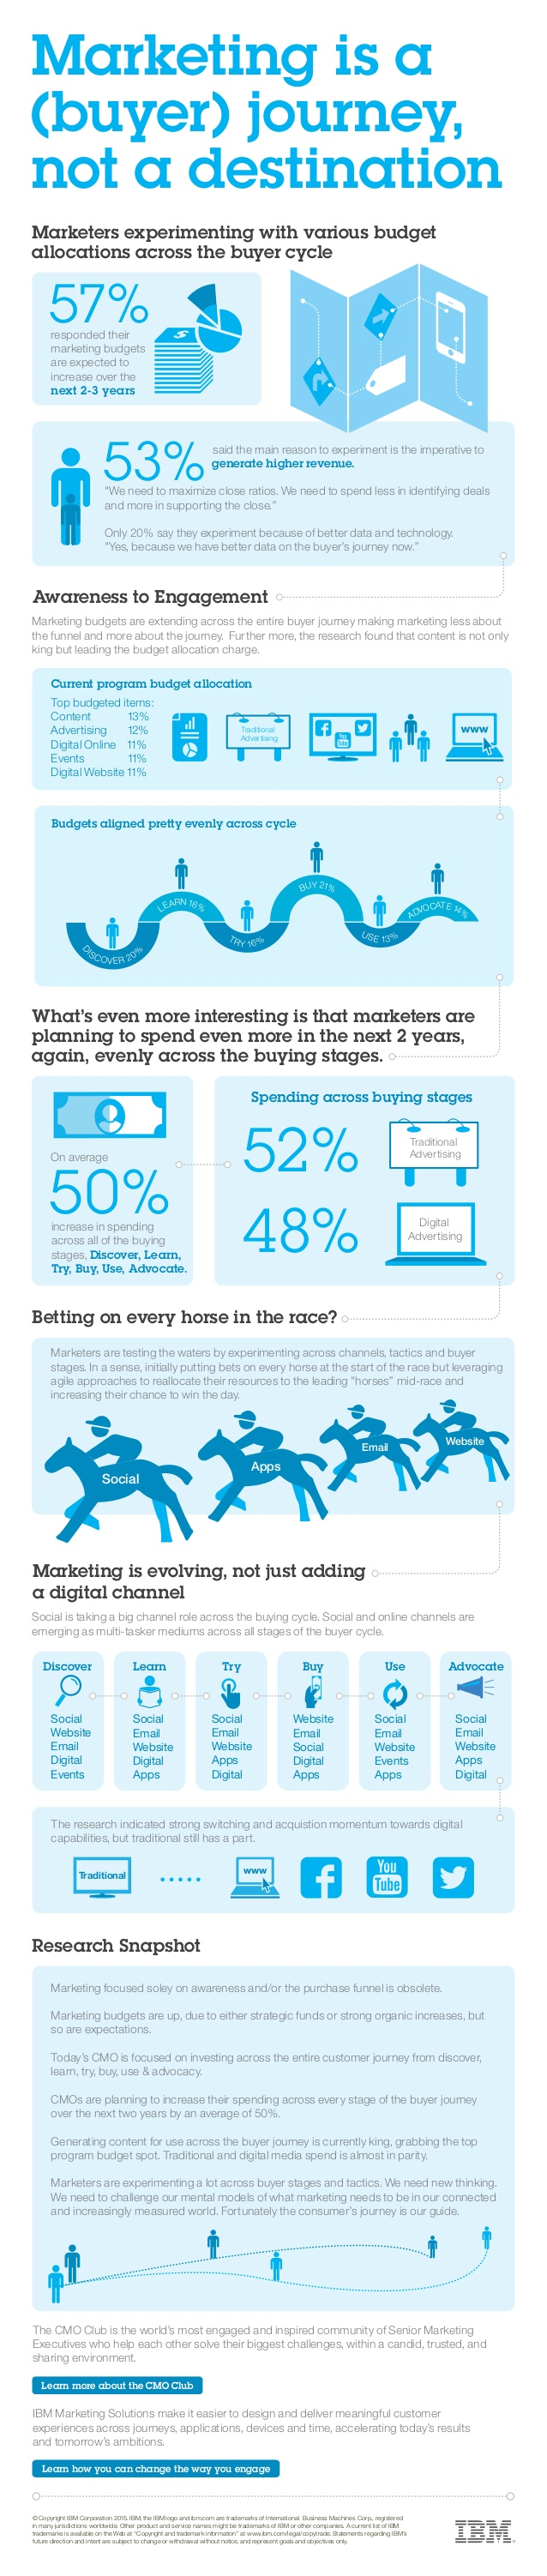 marketing-is-a-buyer-journey-not-a-destination-cmo-insights-infographic-1-638